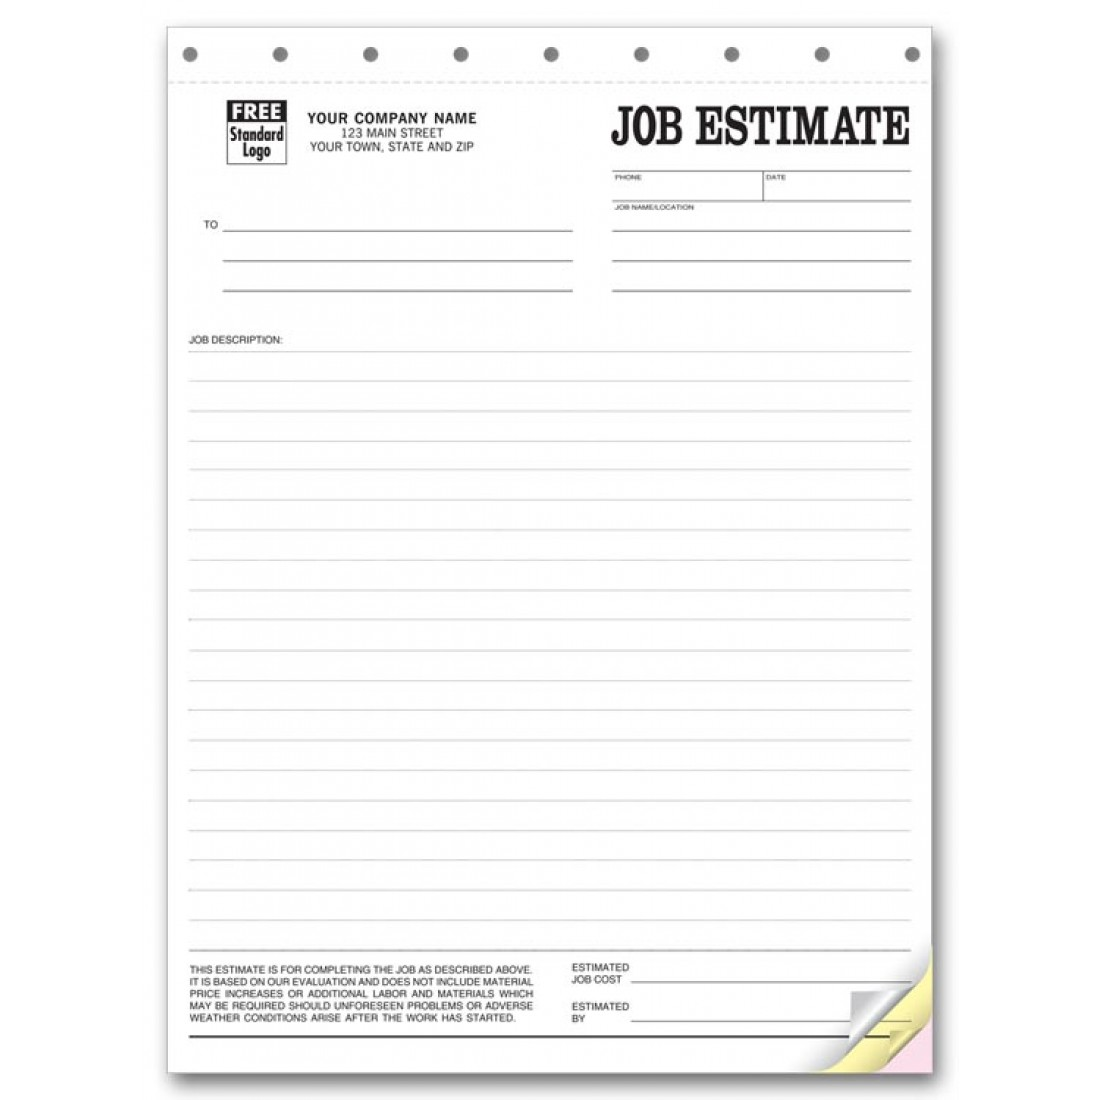 Job Estimate Business Forms Free Shipping